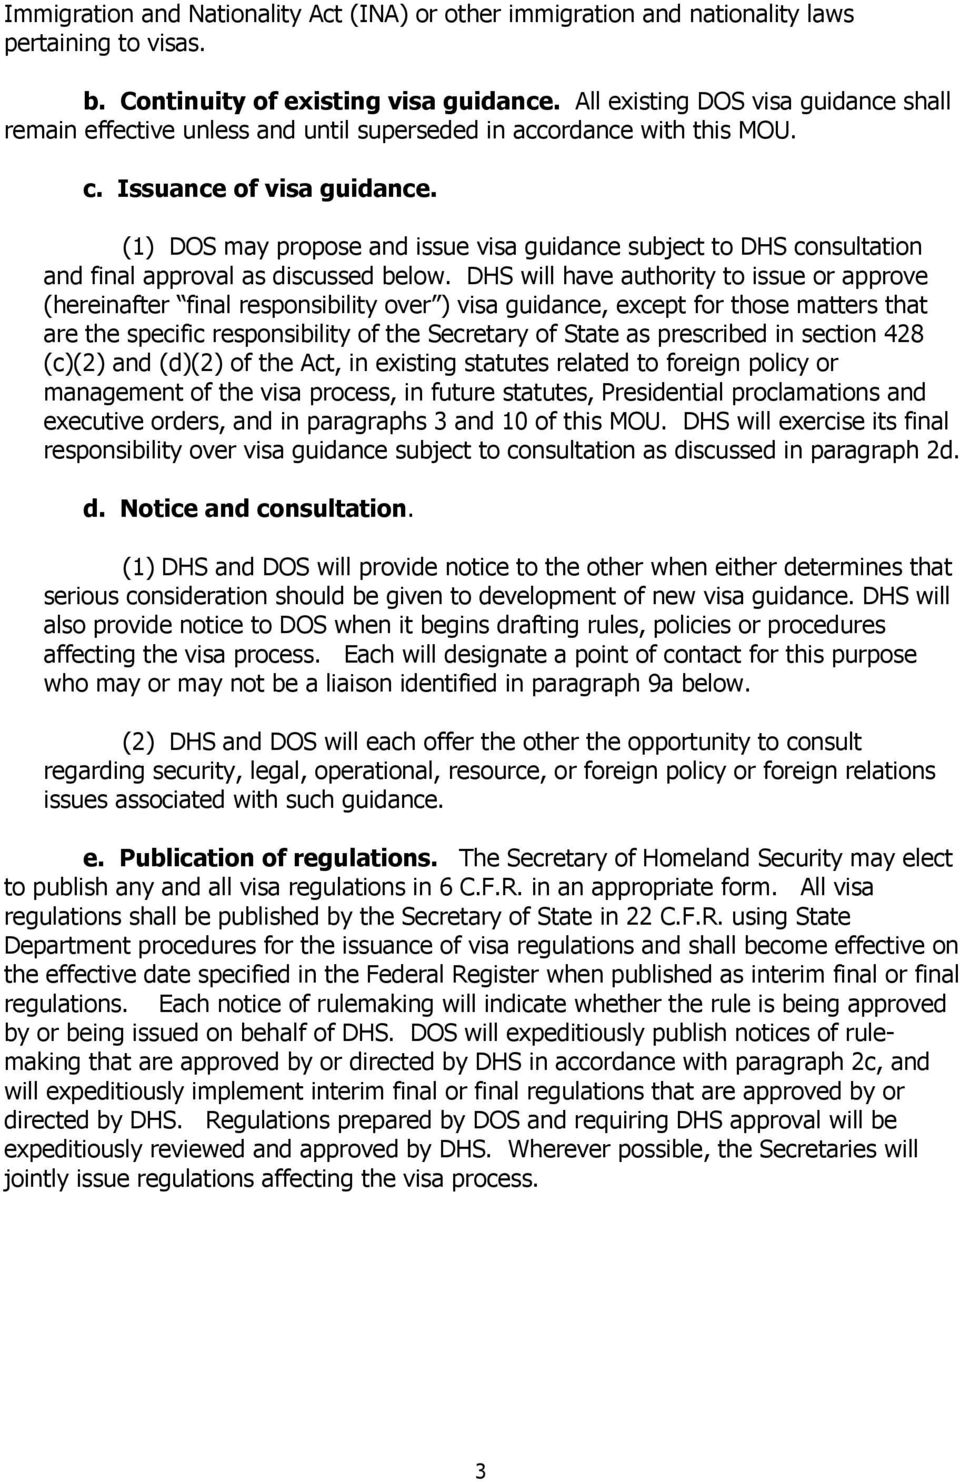 (1) DOS may propose and issue visa guidance subject to DHS consultation and final approval as discussed below.